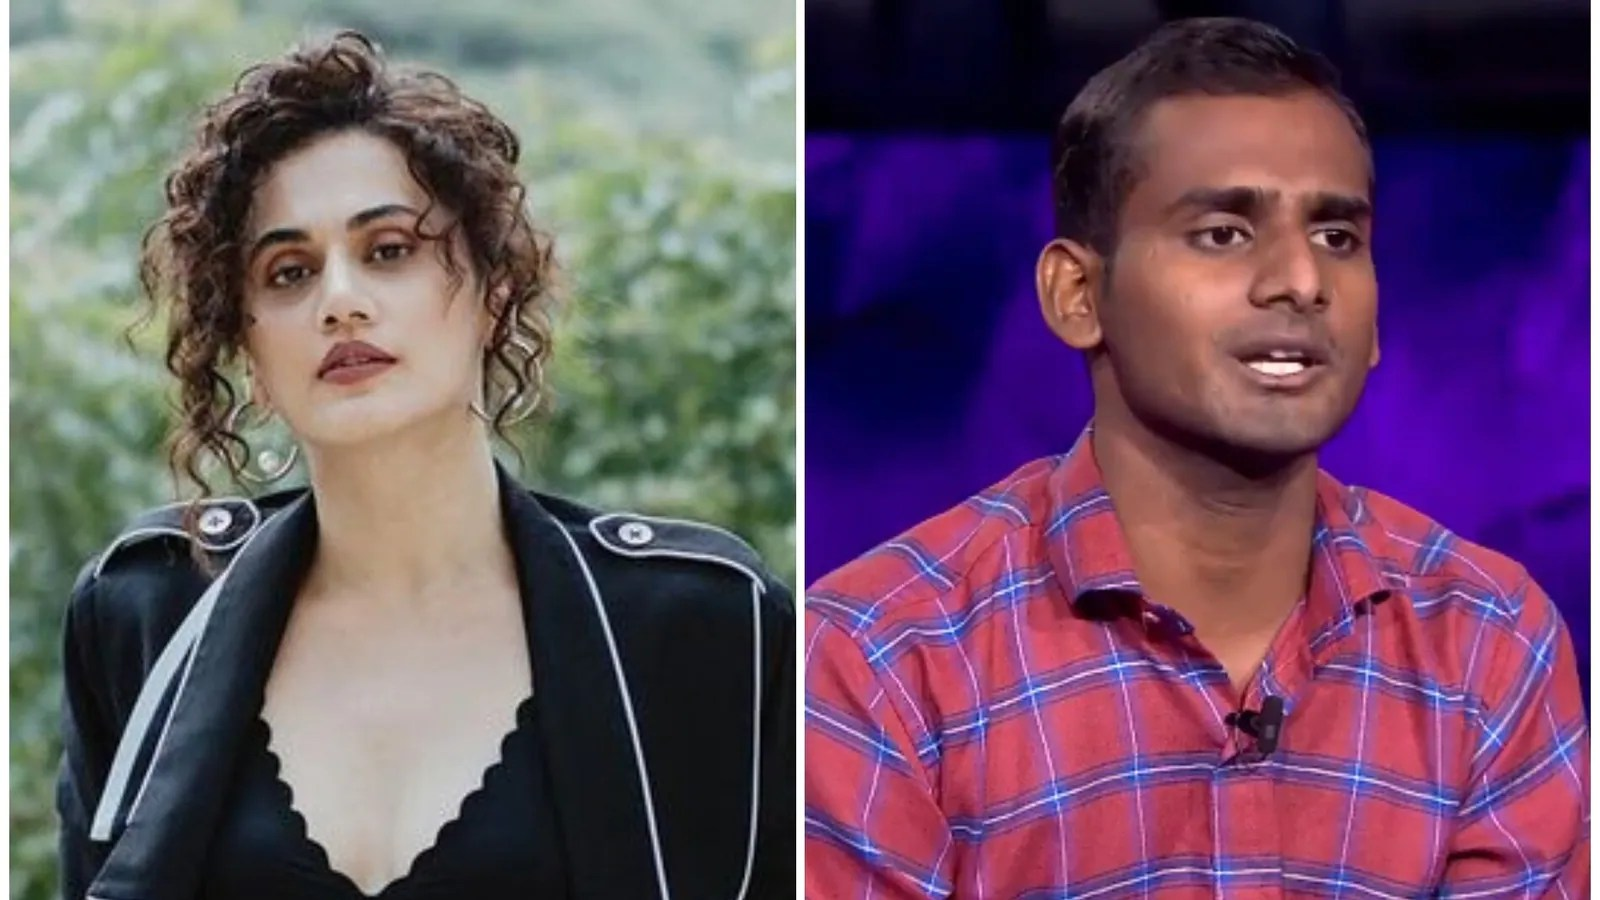 Taapsee Pannu replies to Kaun Banega Crorepati 13 contestant's question about her that stumped Amitabh Bachchan